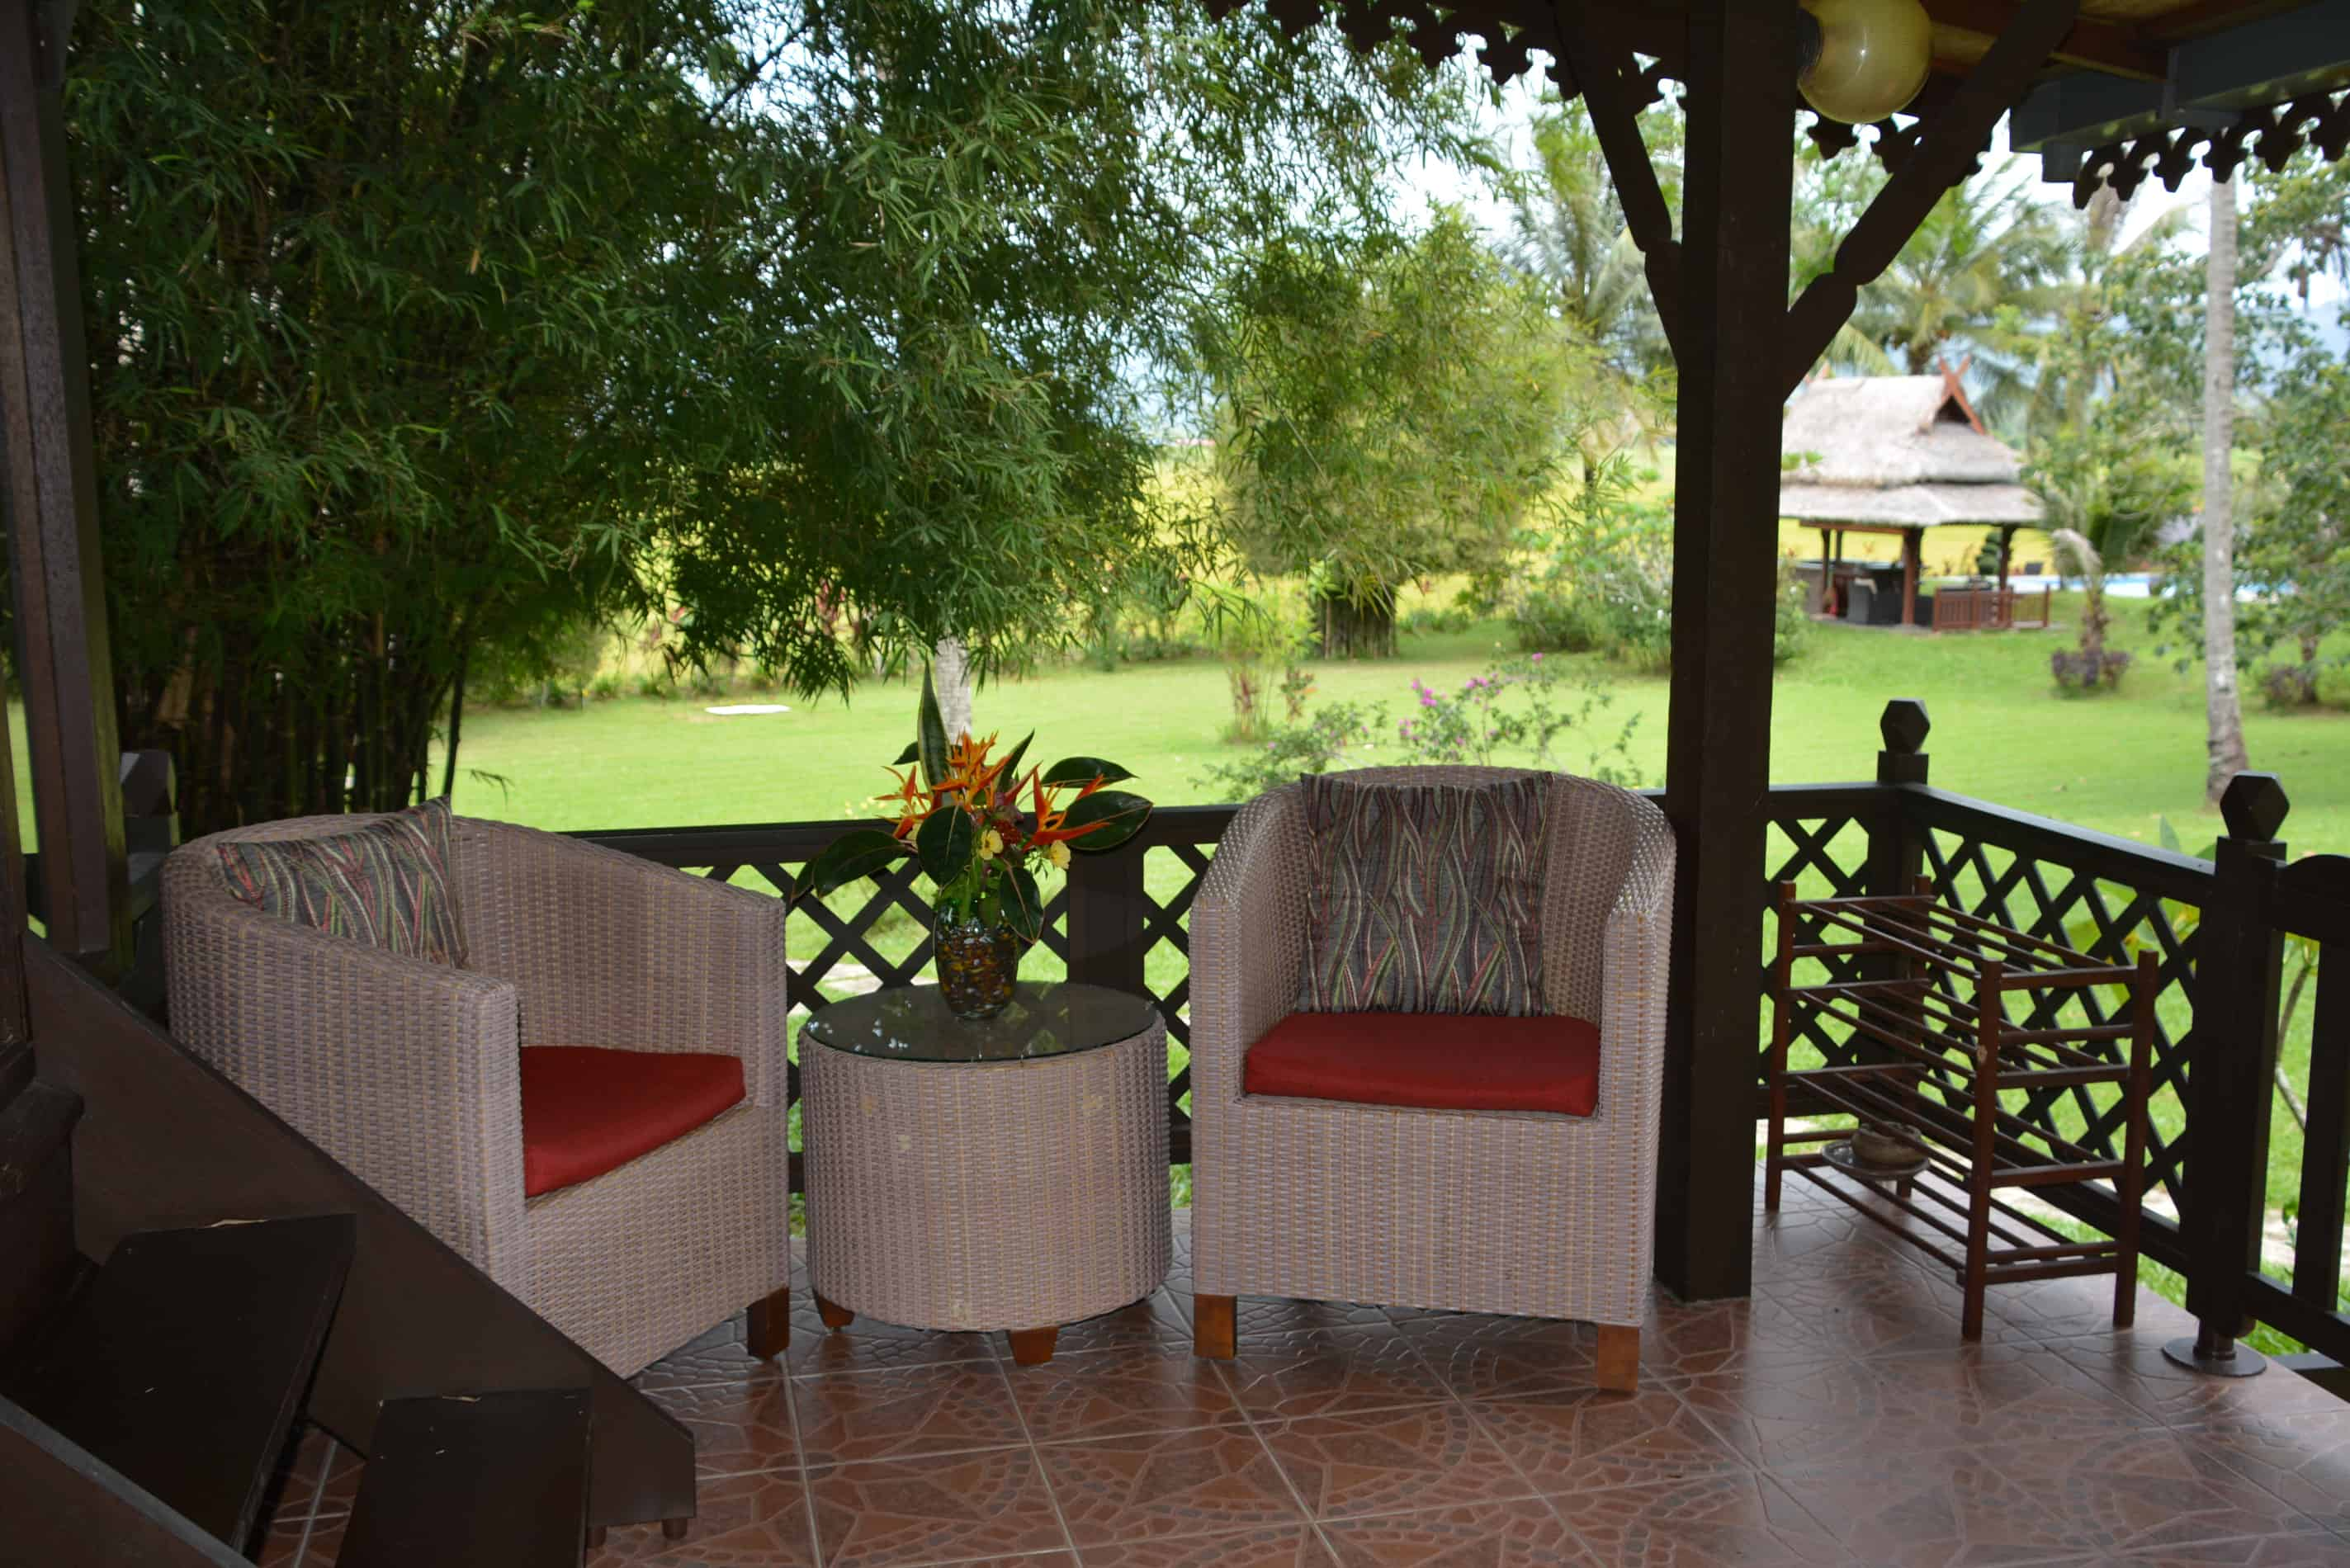 Farmers House - Veranda and view